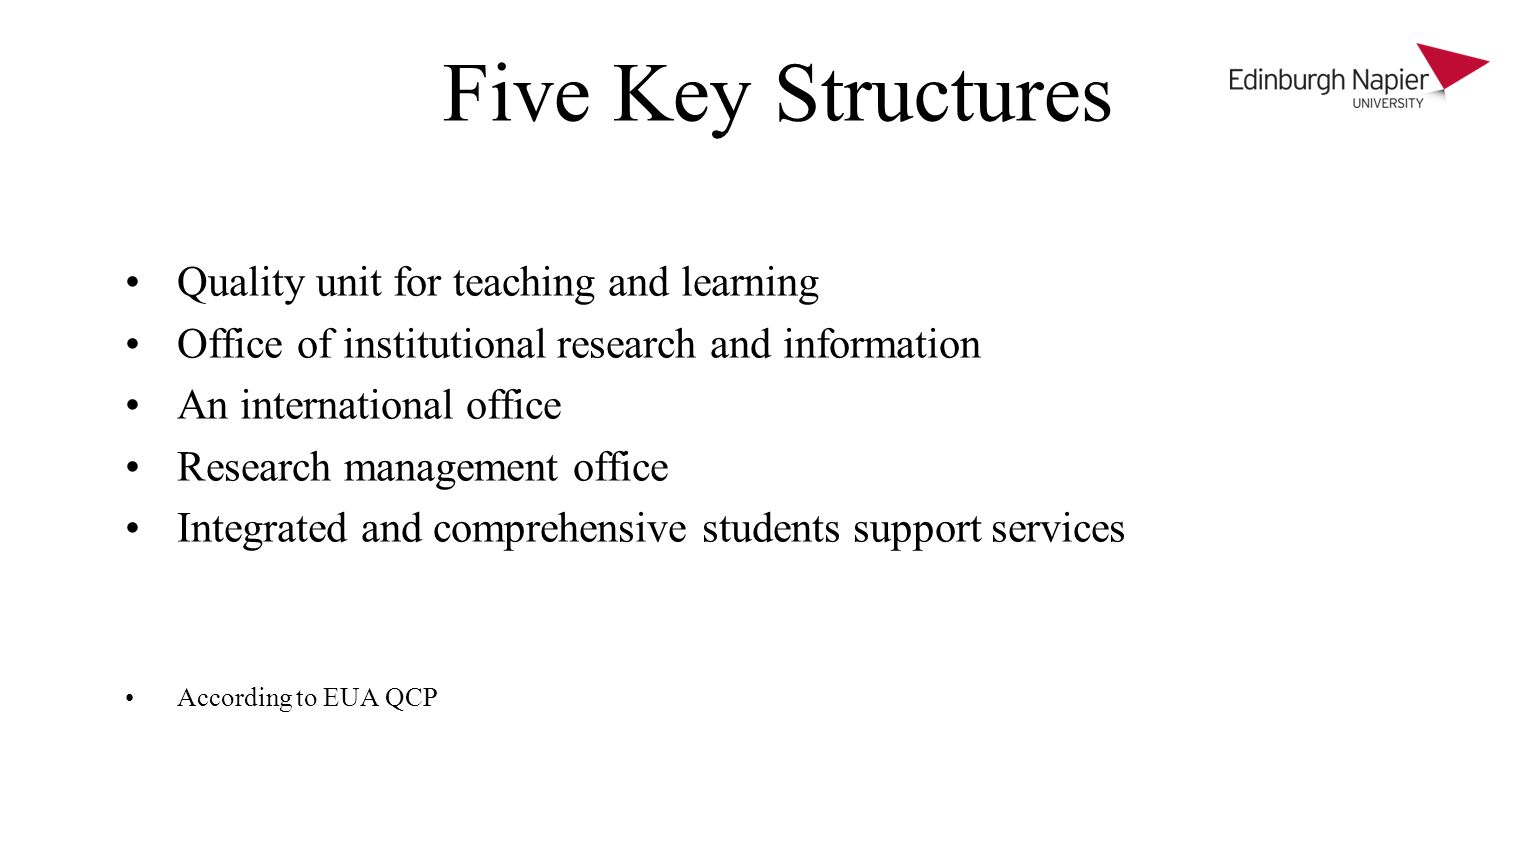 Five Key Structures Quality unit for teaching and learning Office of institutional research and information An international office Research management office Integrated and comprehensive students support services According to EUA QCP